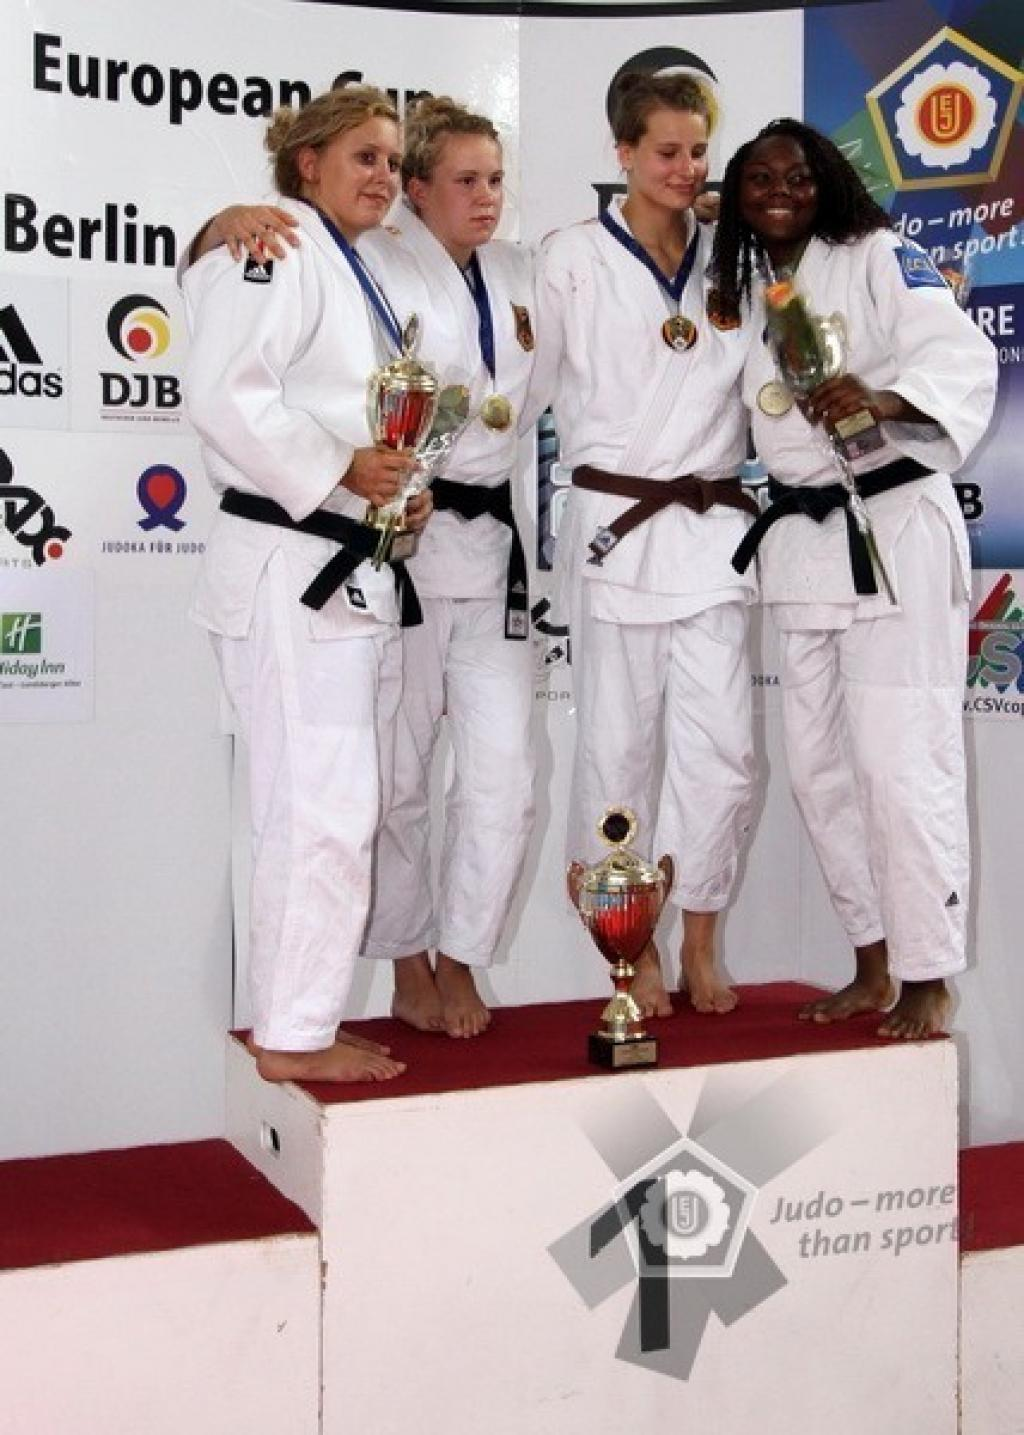 Germany strong at European Cup for Juniors in Berlin